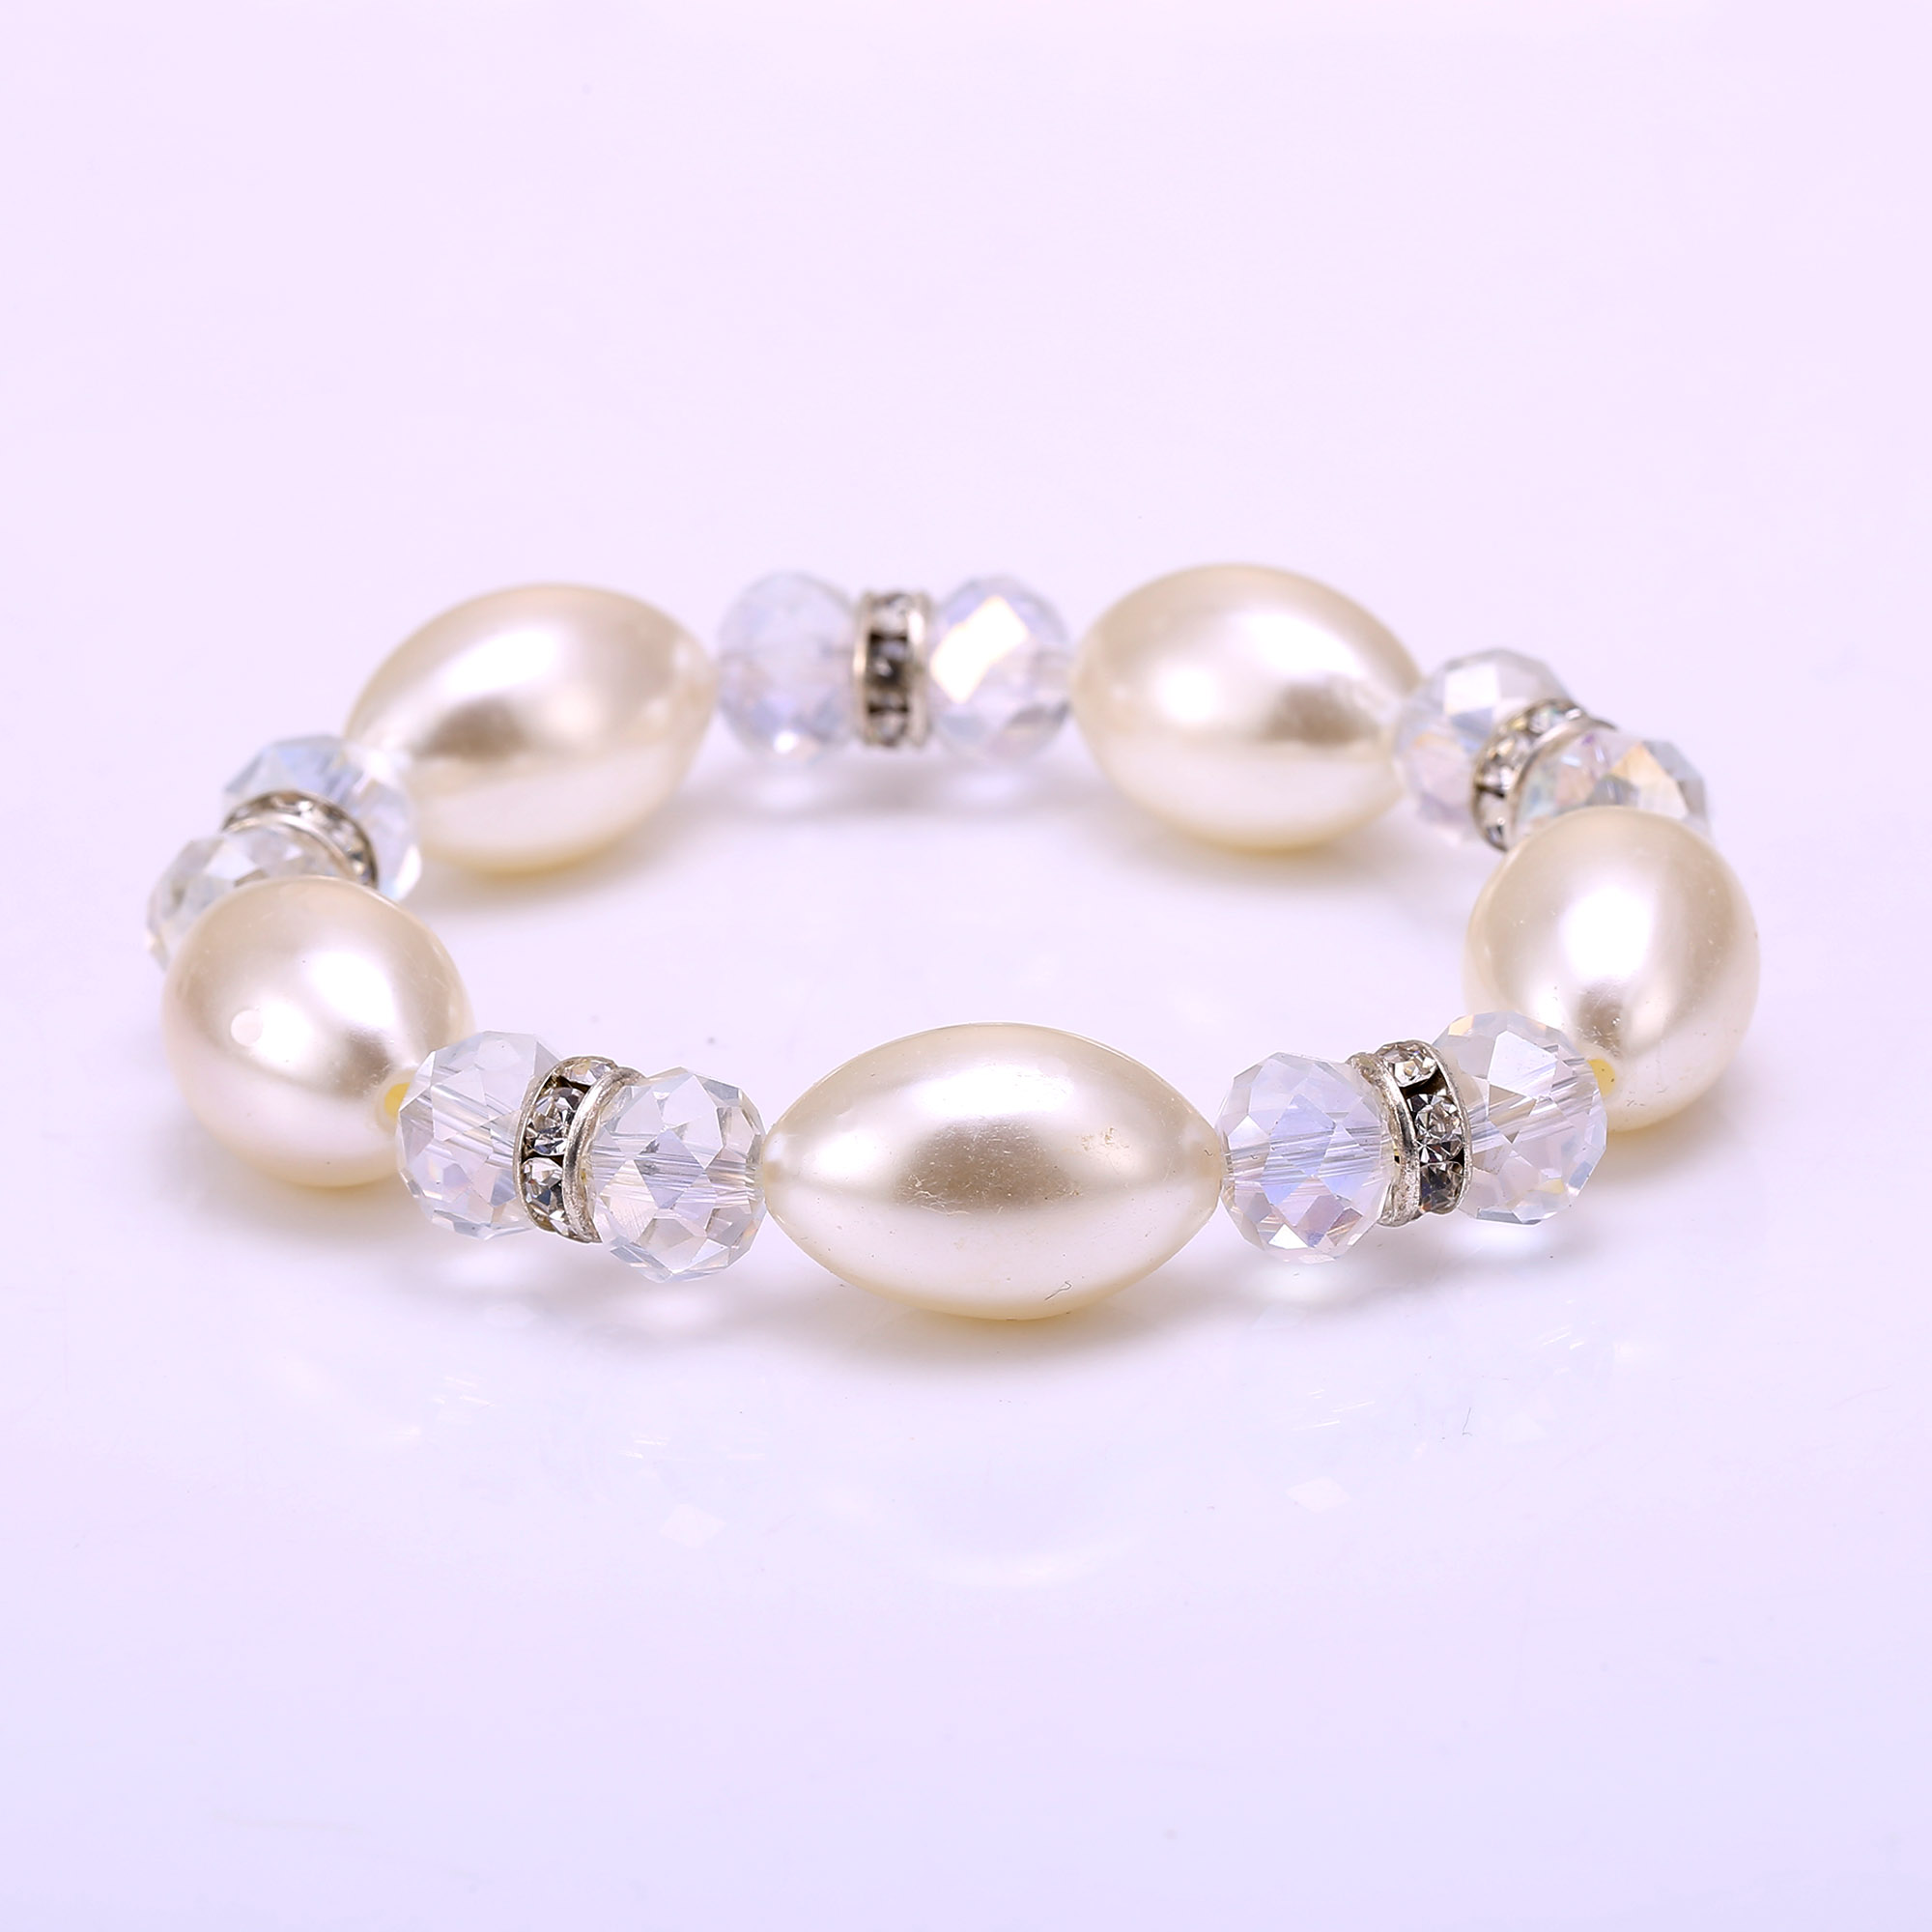 Perfectly Simulated Pearl Charm Bracelets With Crystal For Women Vintage Beads Best Friend Jewelry gift Pulseiras mb10187